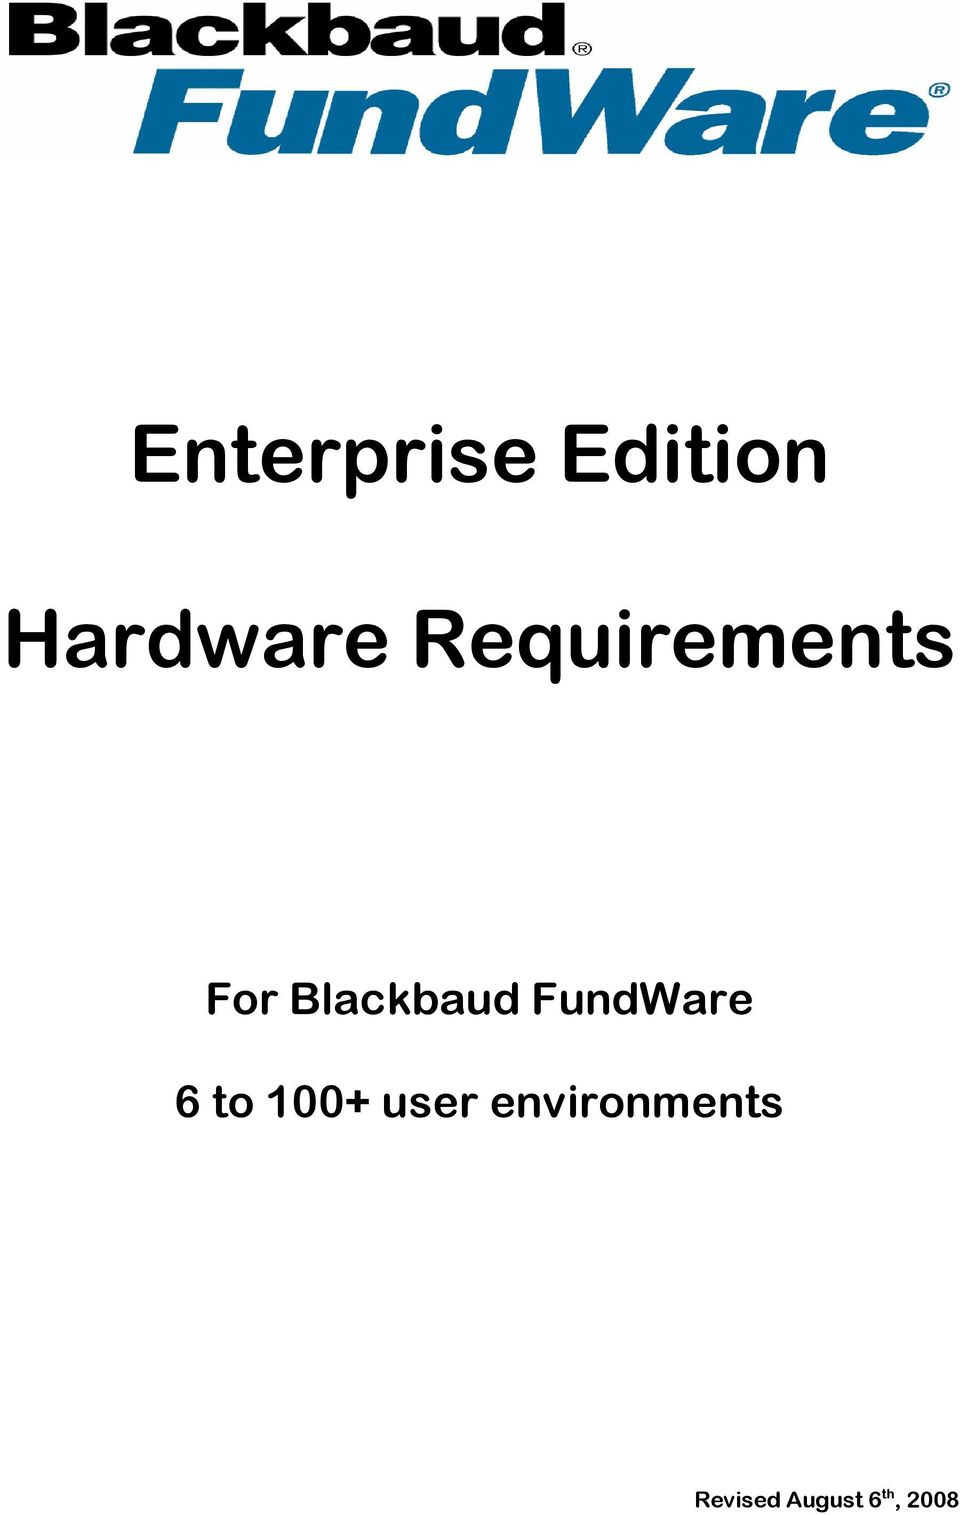 FundWare 6 to 100+ user